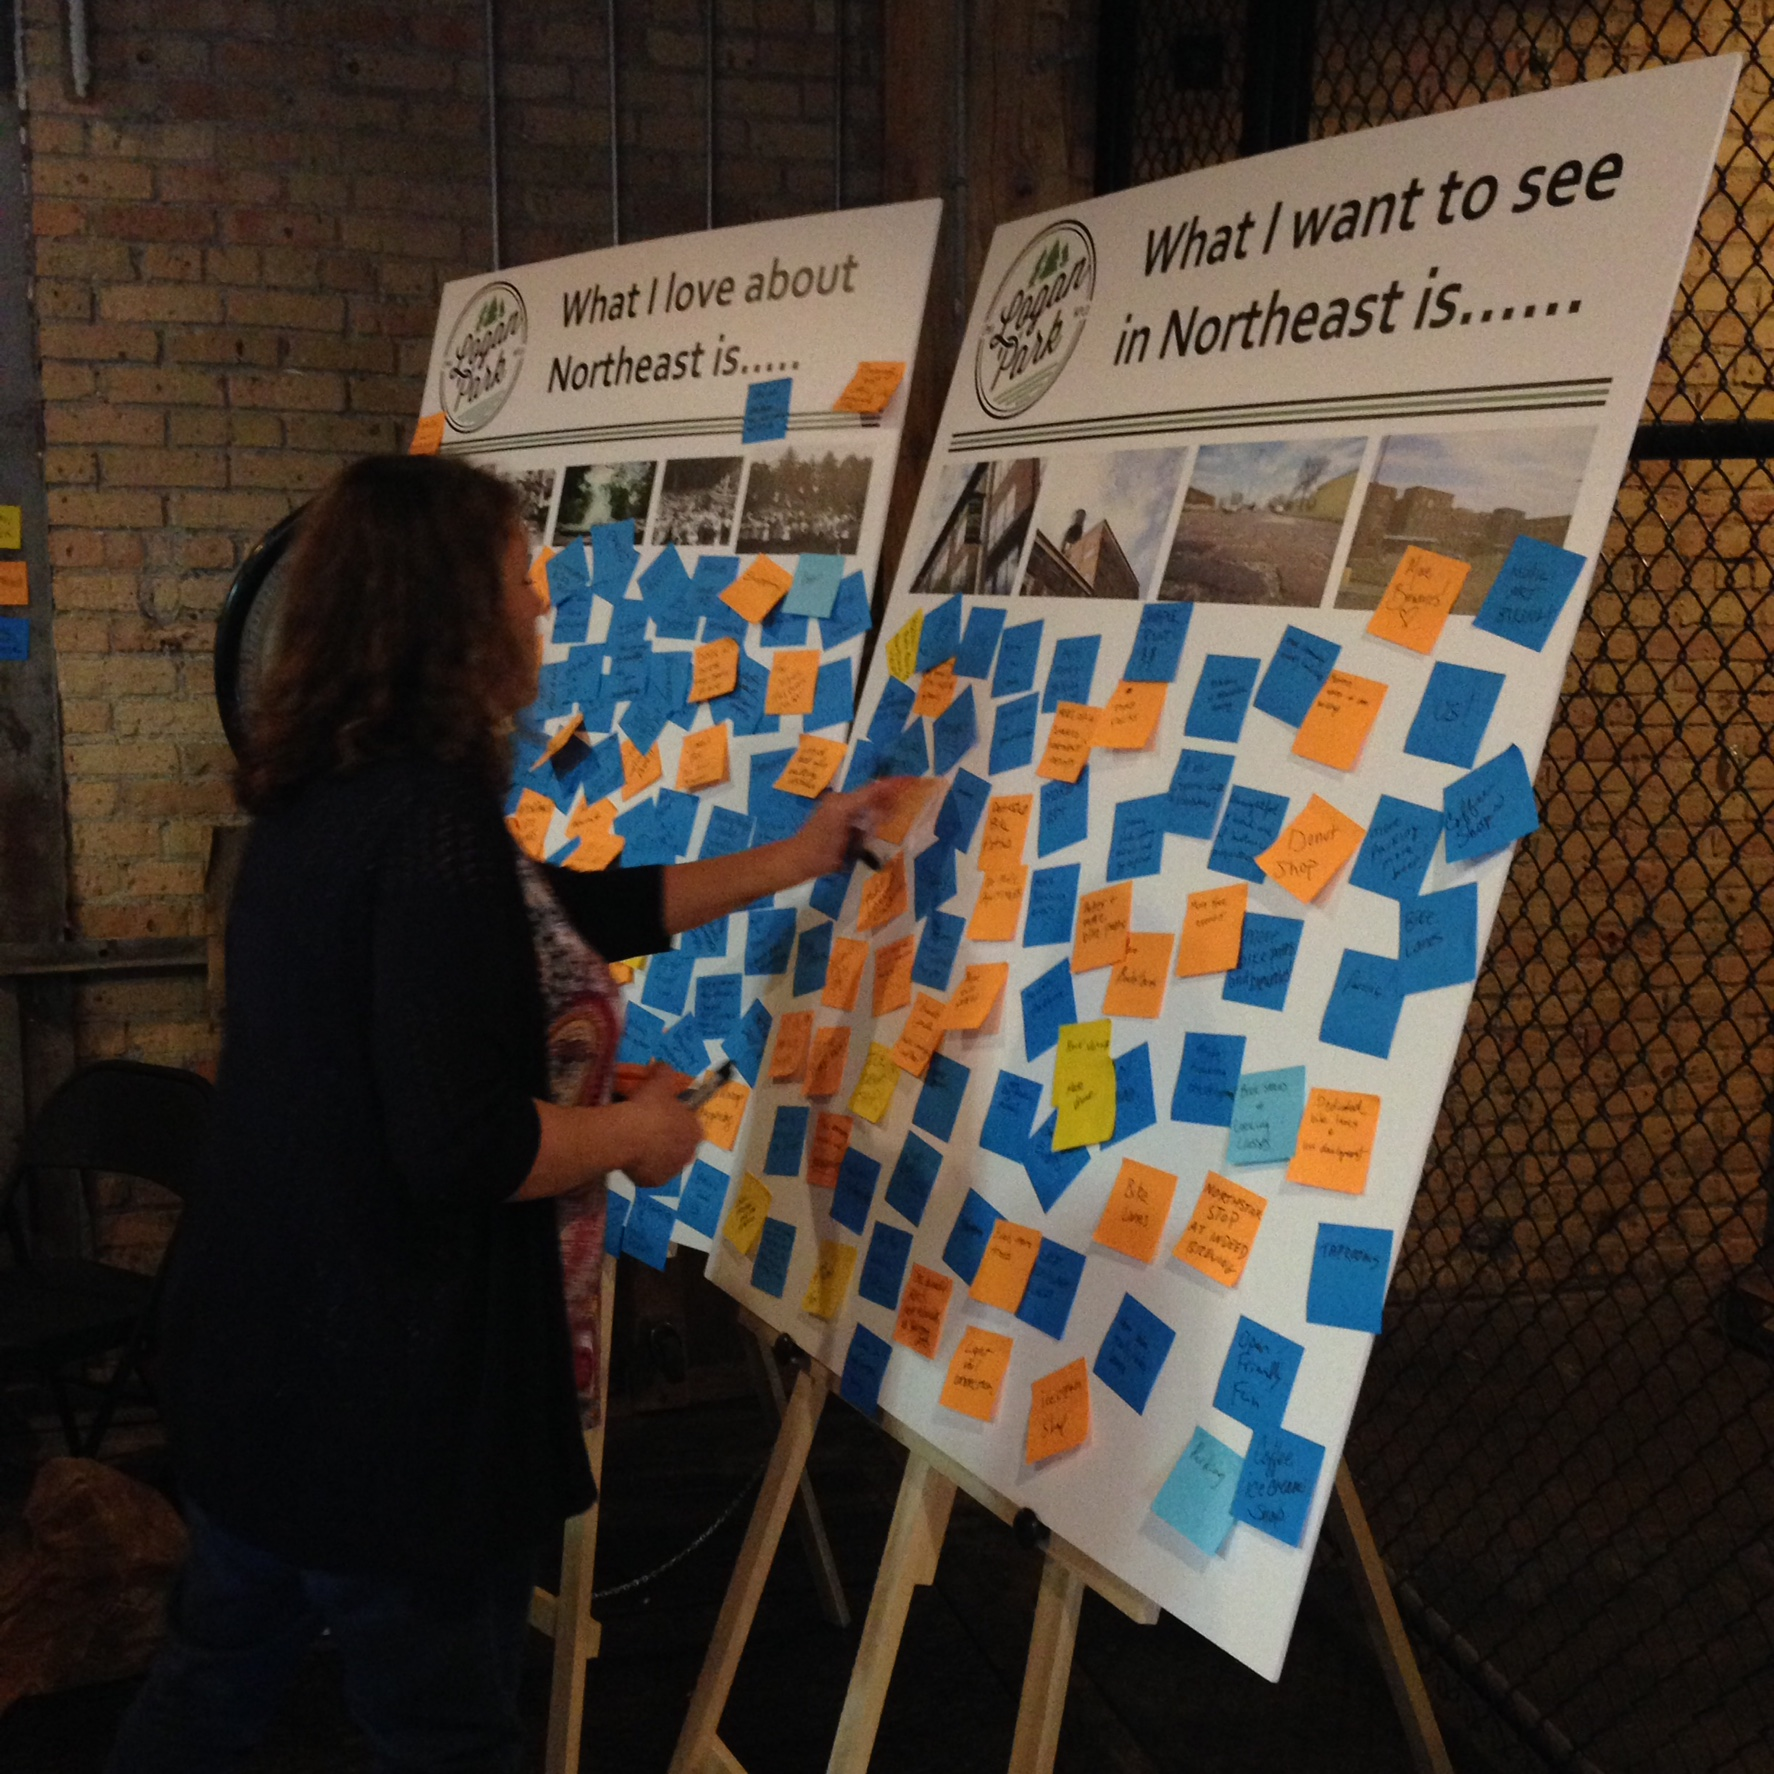 Post-it idea board at public meeting about what residents would like to see in Northeast